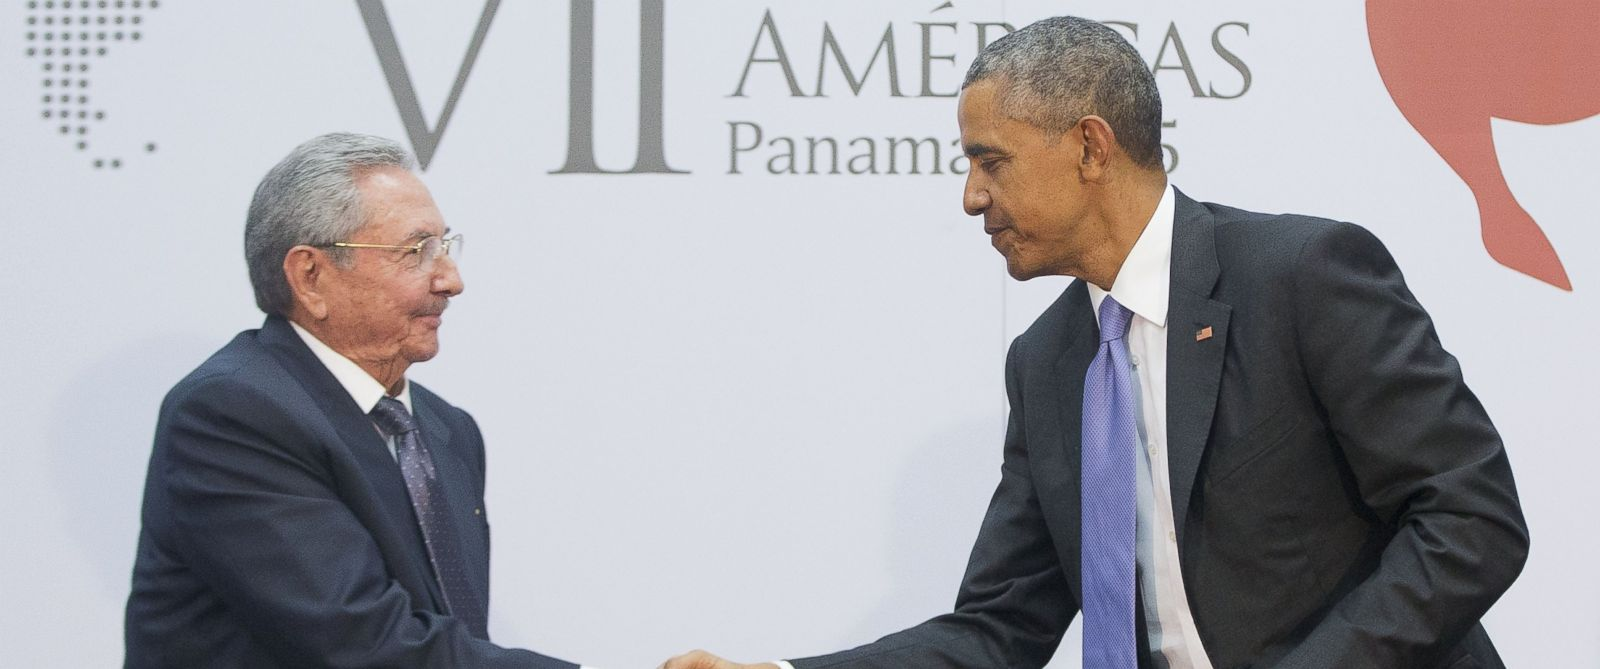 PHOTO: President Barack Obama and Cuban President Raul Castro shake hands during their meeting at the Summit of the Americas in Panama City, April 11, 2015.